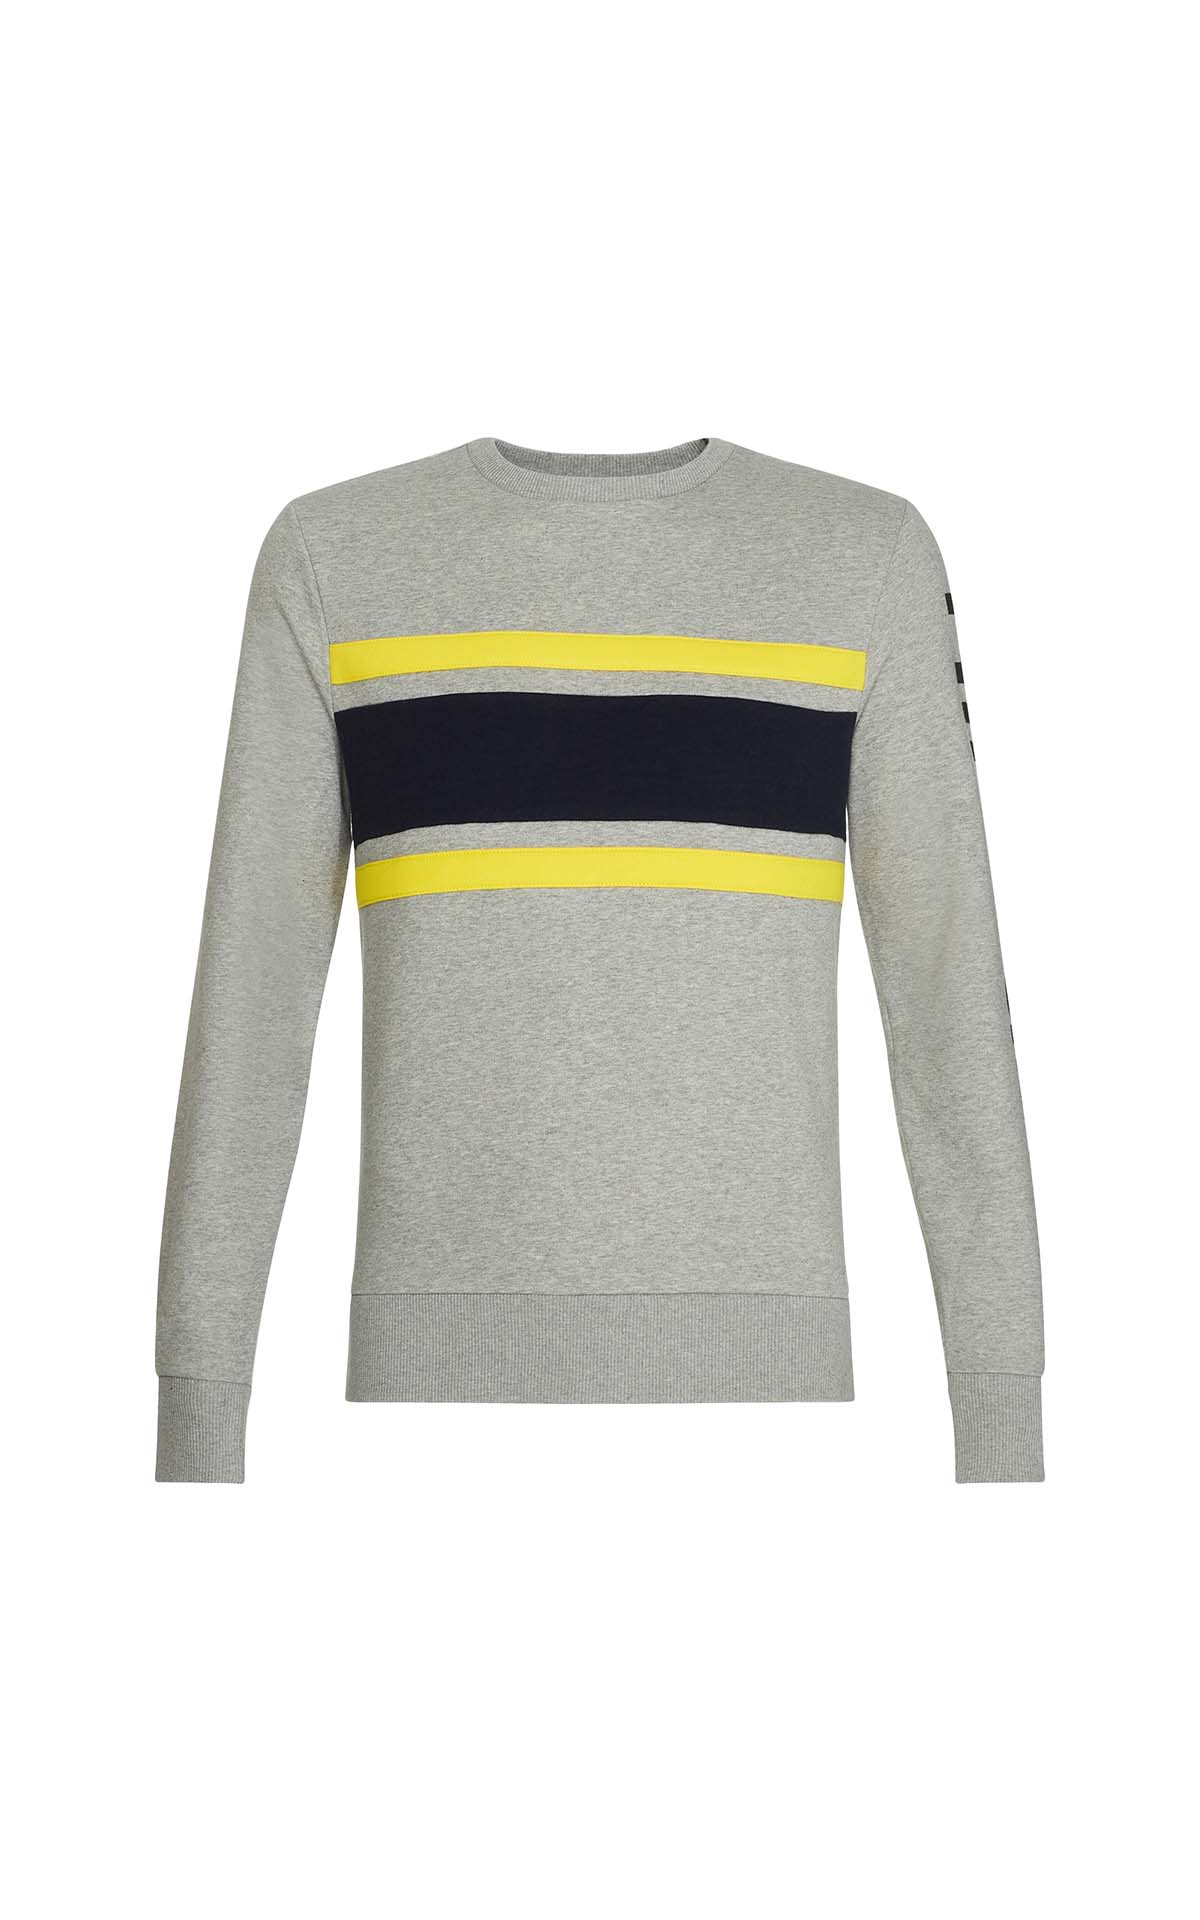 Grey sweater with navy blue and yellow stripes for man Tommy Hilfiger